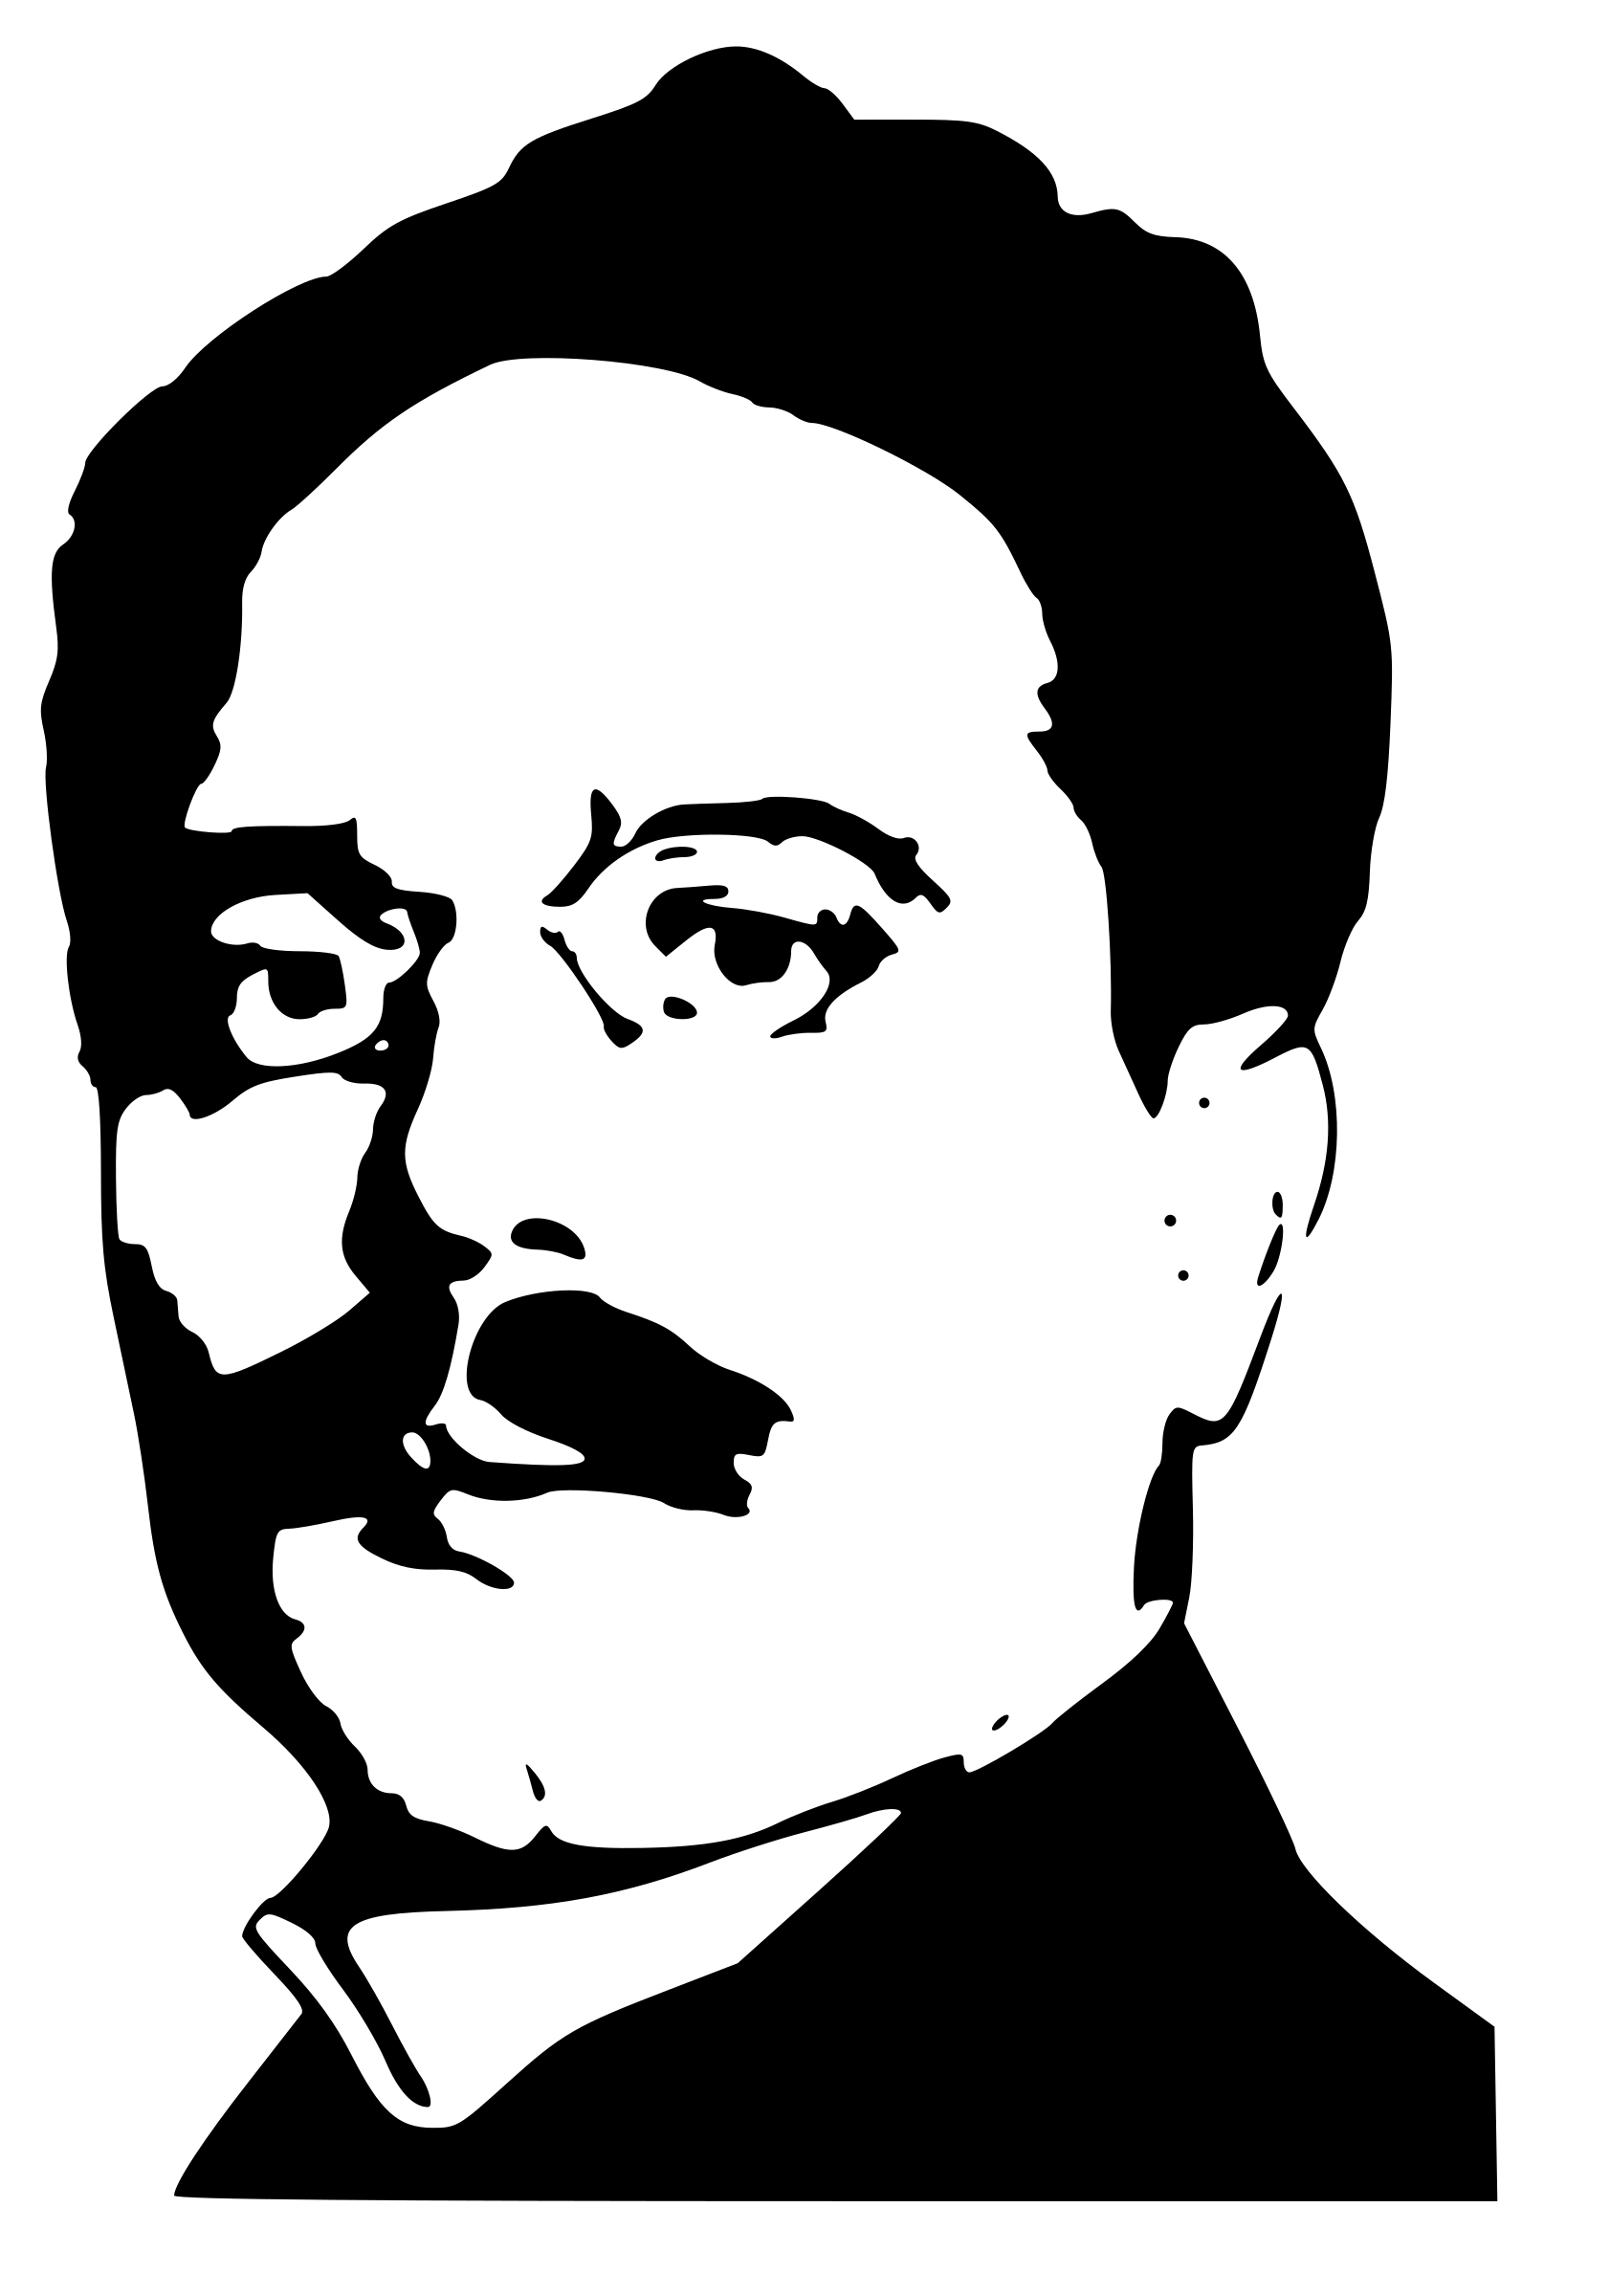 Karl Liebknecht by worker